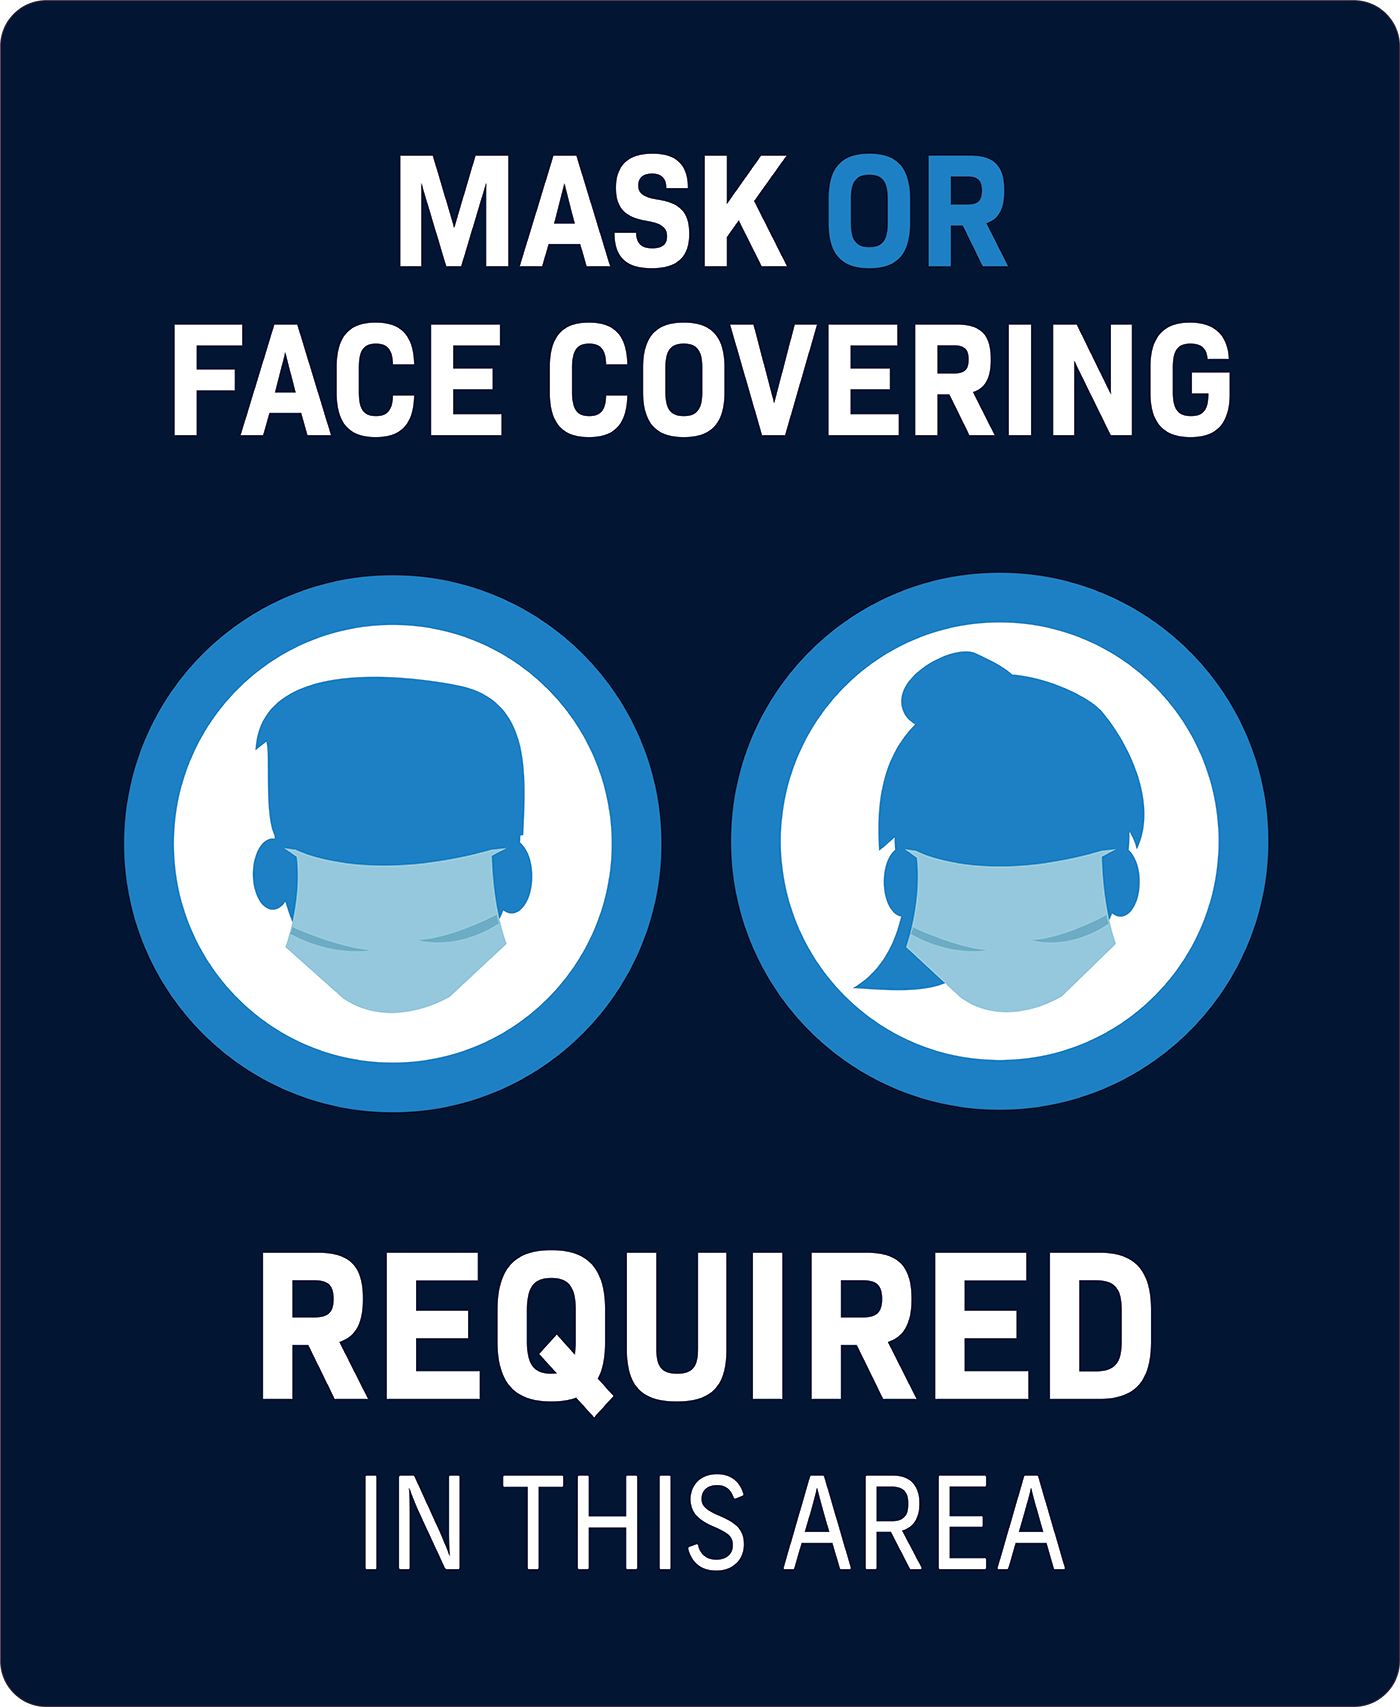 COVID-19 face masks required sign